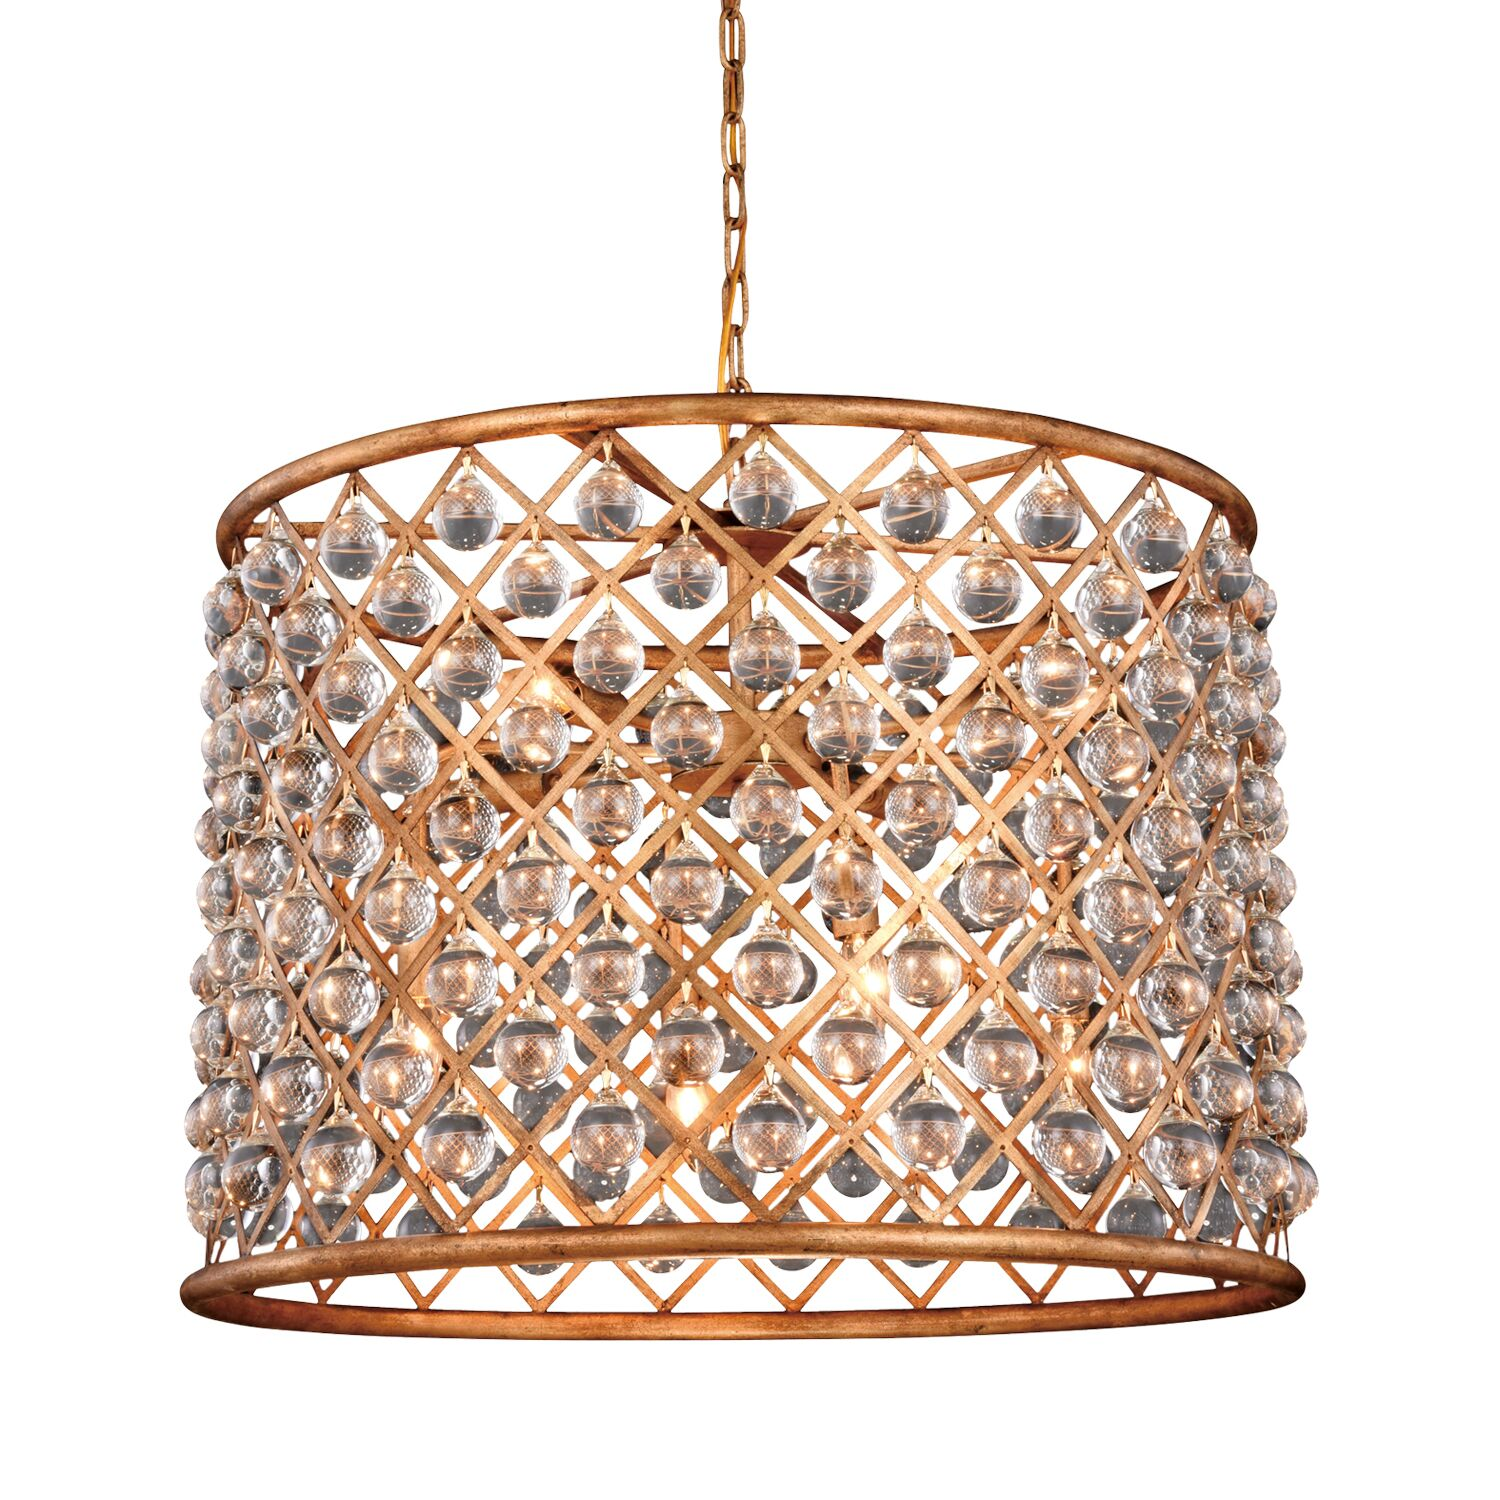 Lulsgate 8-Light Chandelier Finish: Gold, Bulb Type: Incandescent